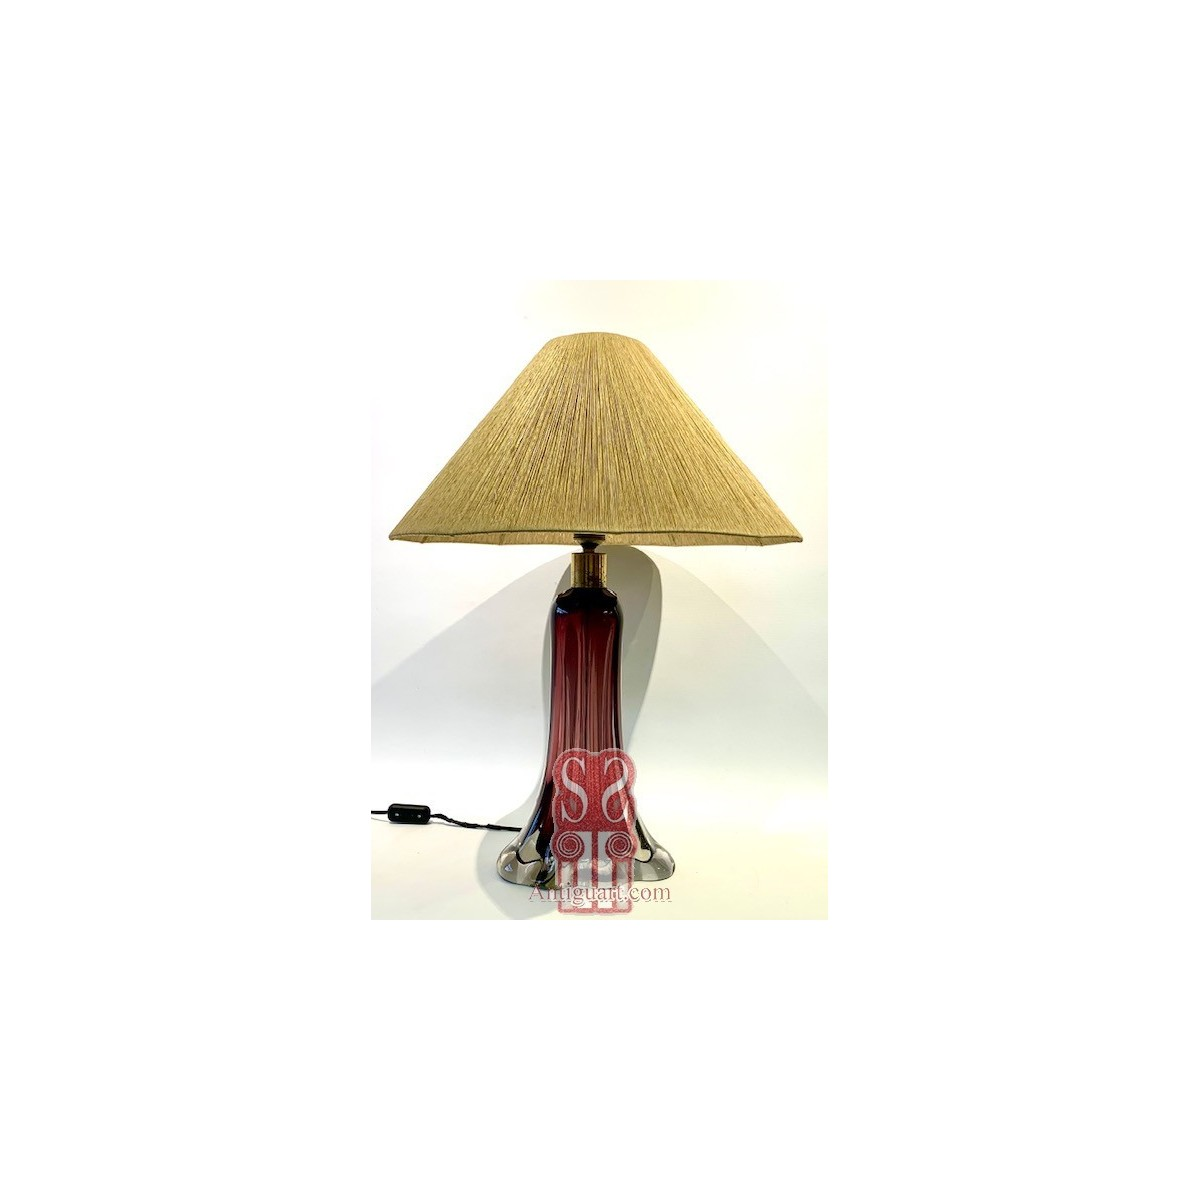 Glass table lamp 1970-80